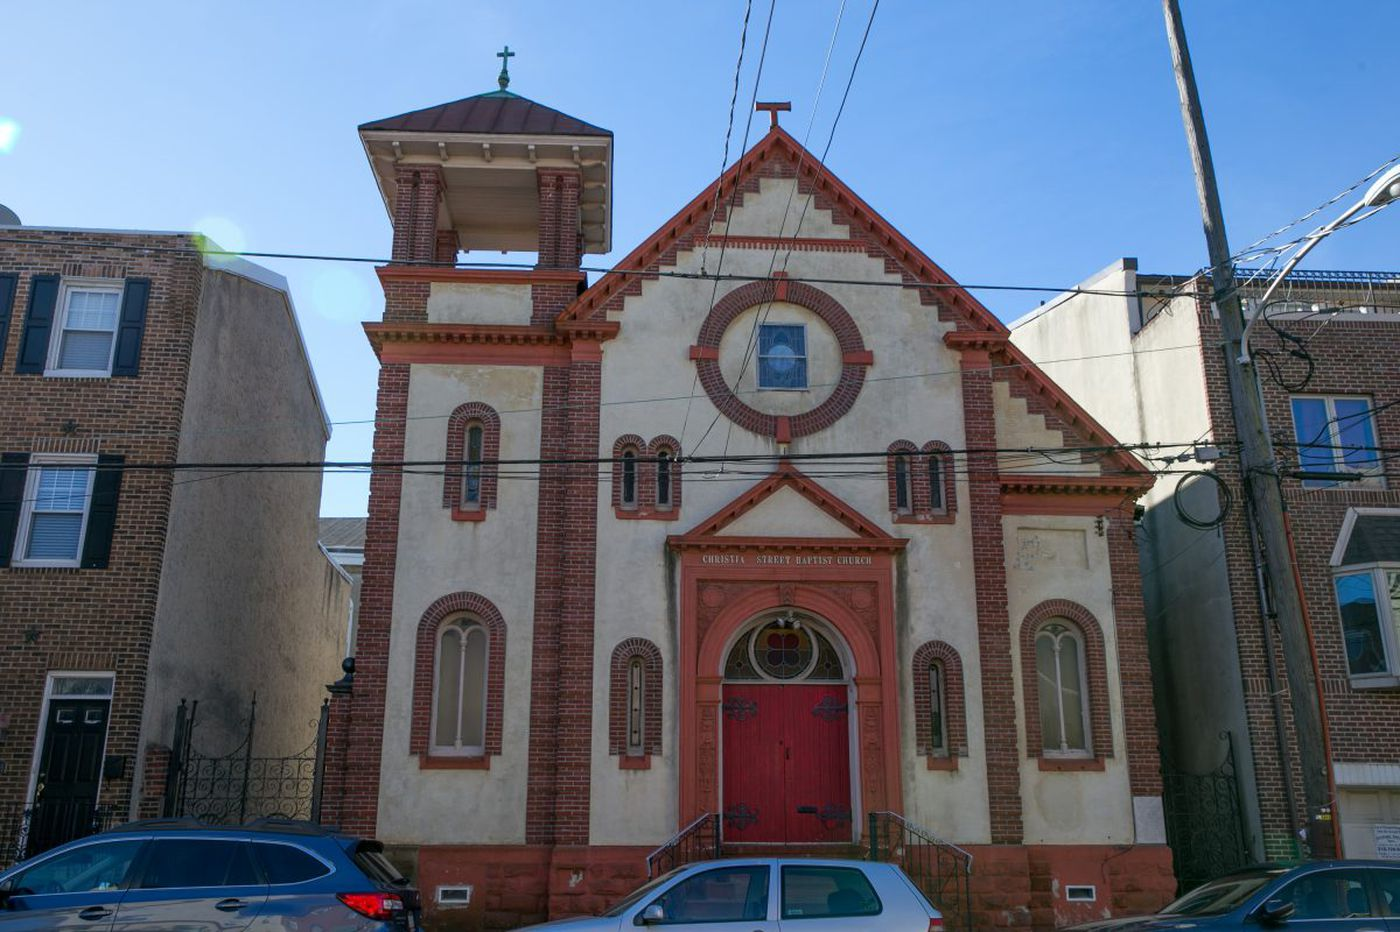 Bella Vista church emerges as latest example of preservation vs. development tensions in Philly